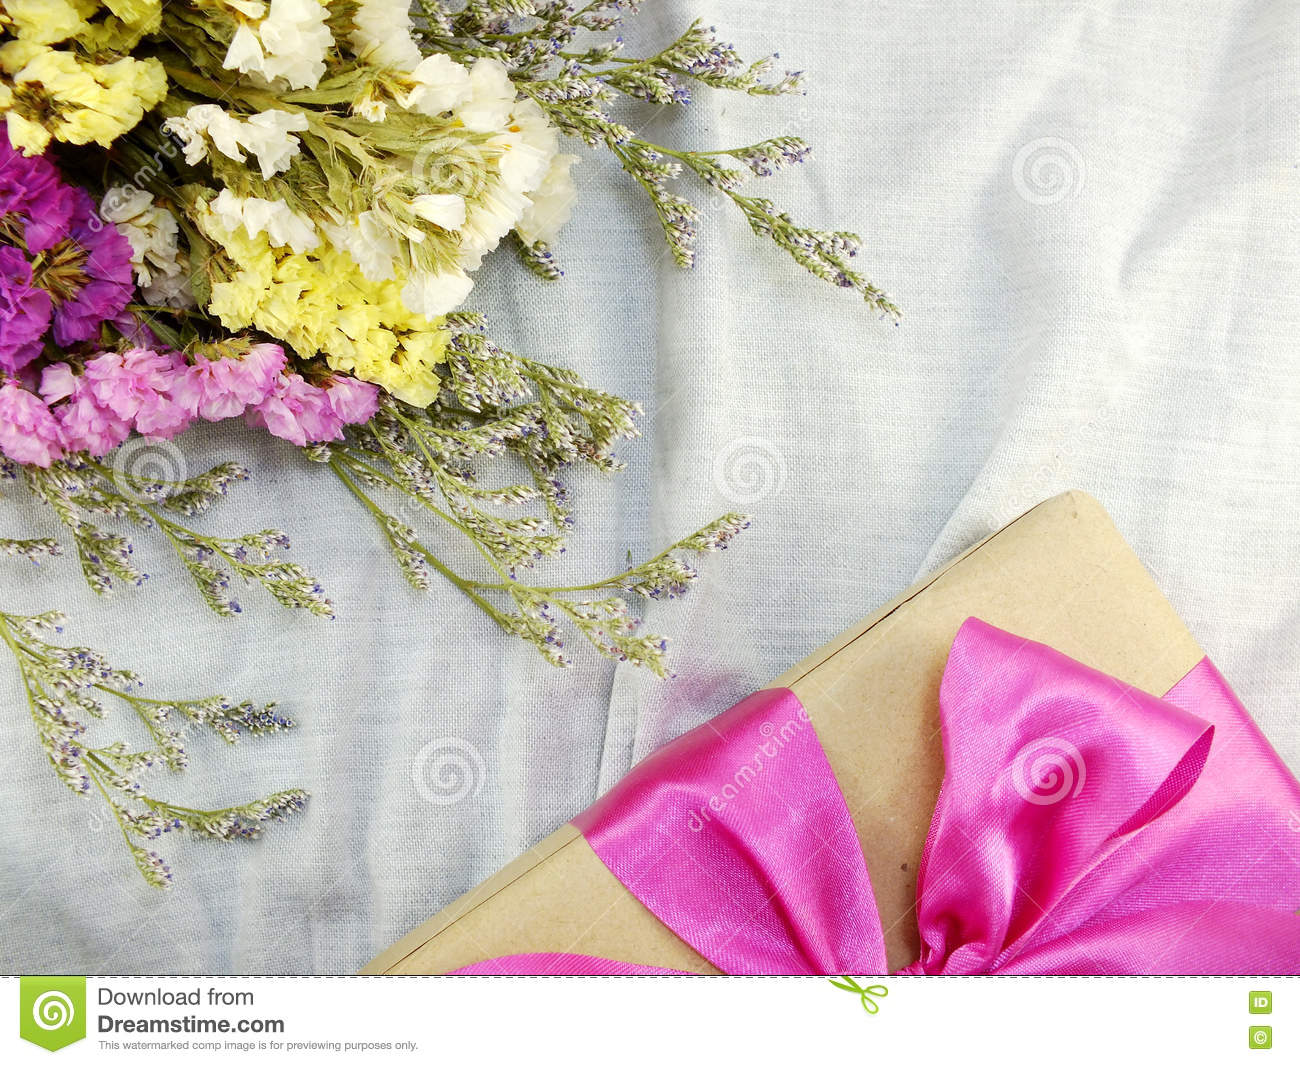 Craft Paper Gift Box With Ribbon Bow And Flower Bouquet Stock Image